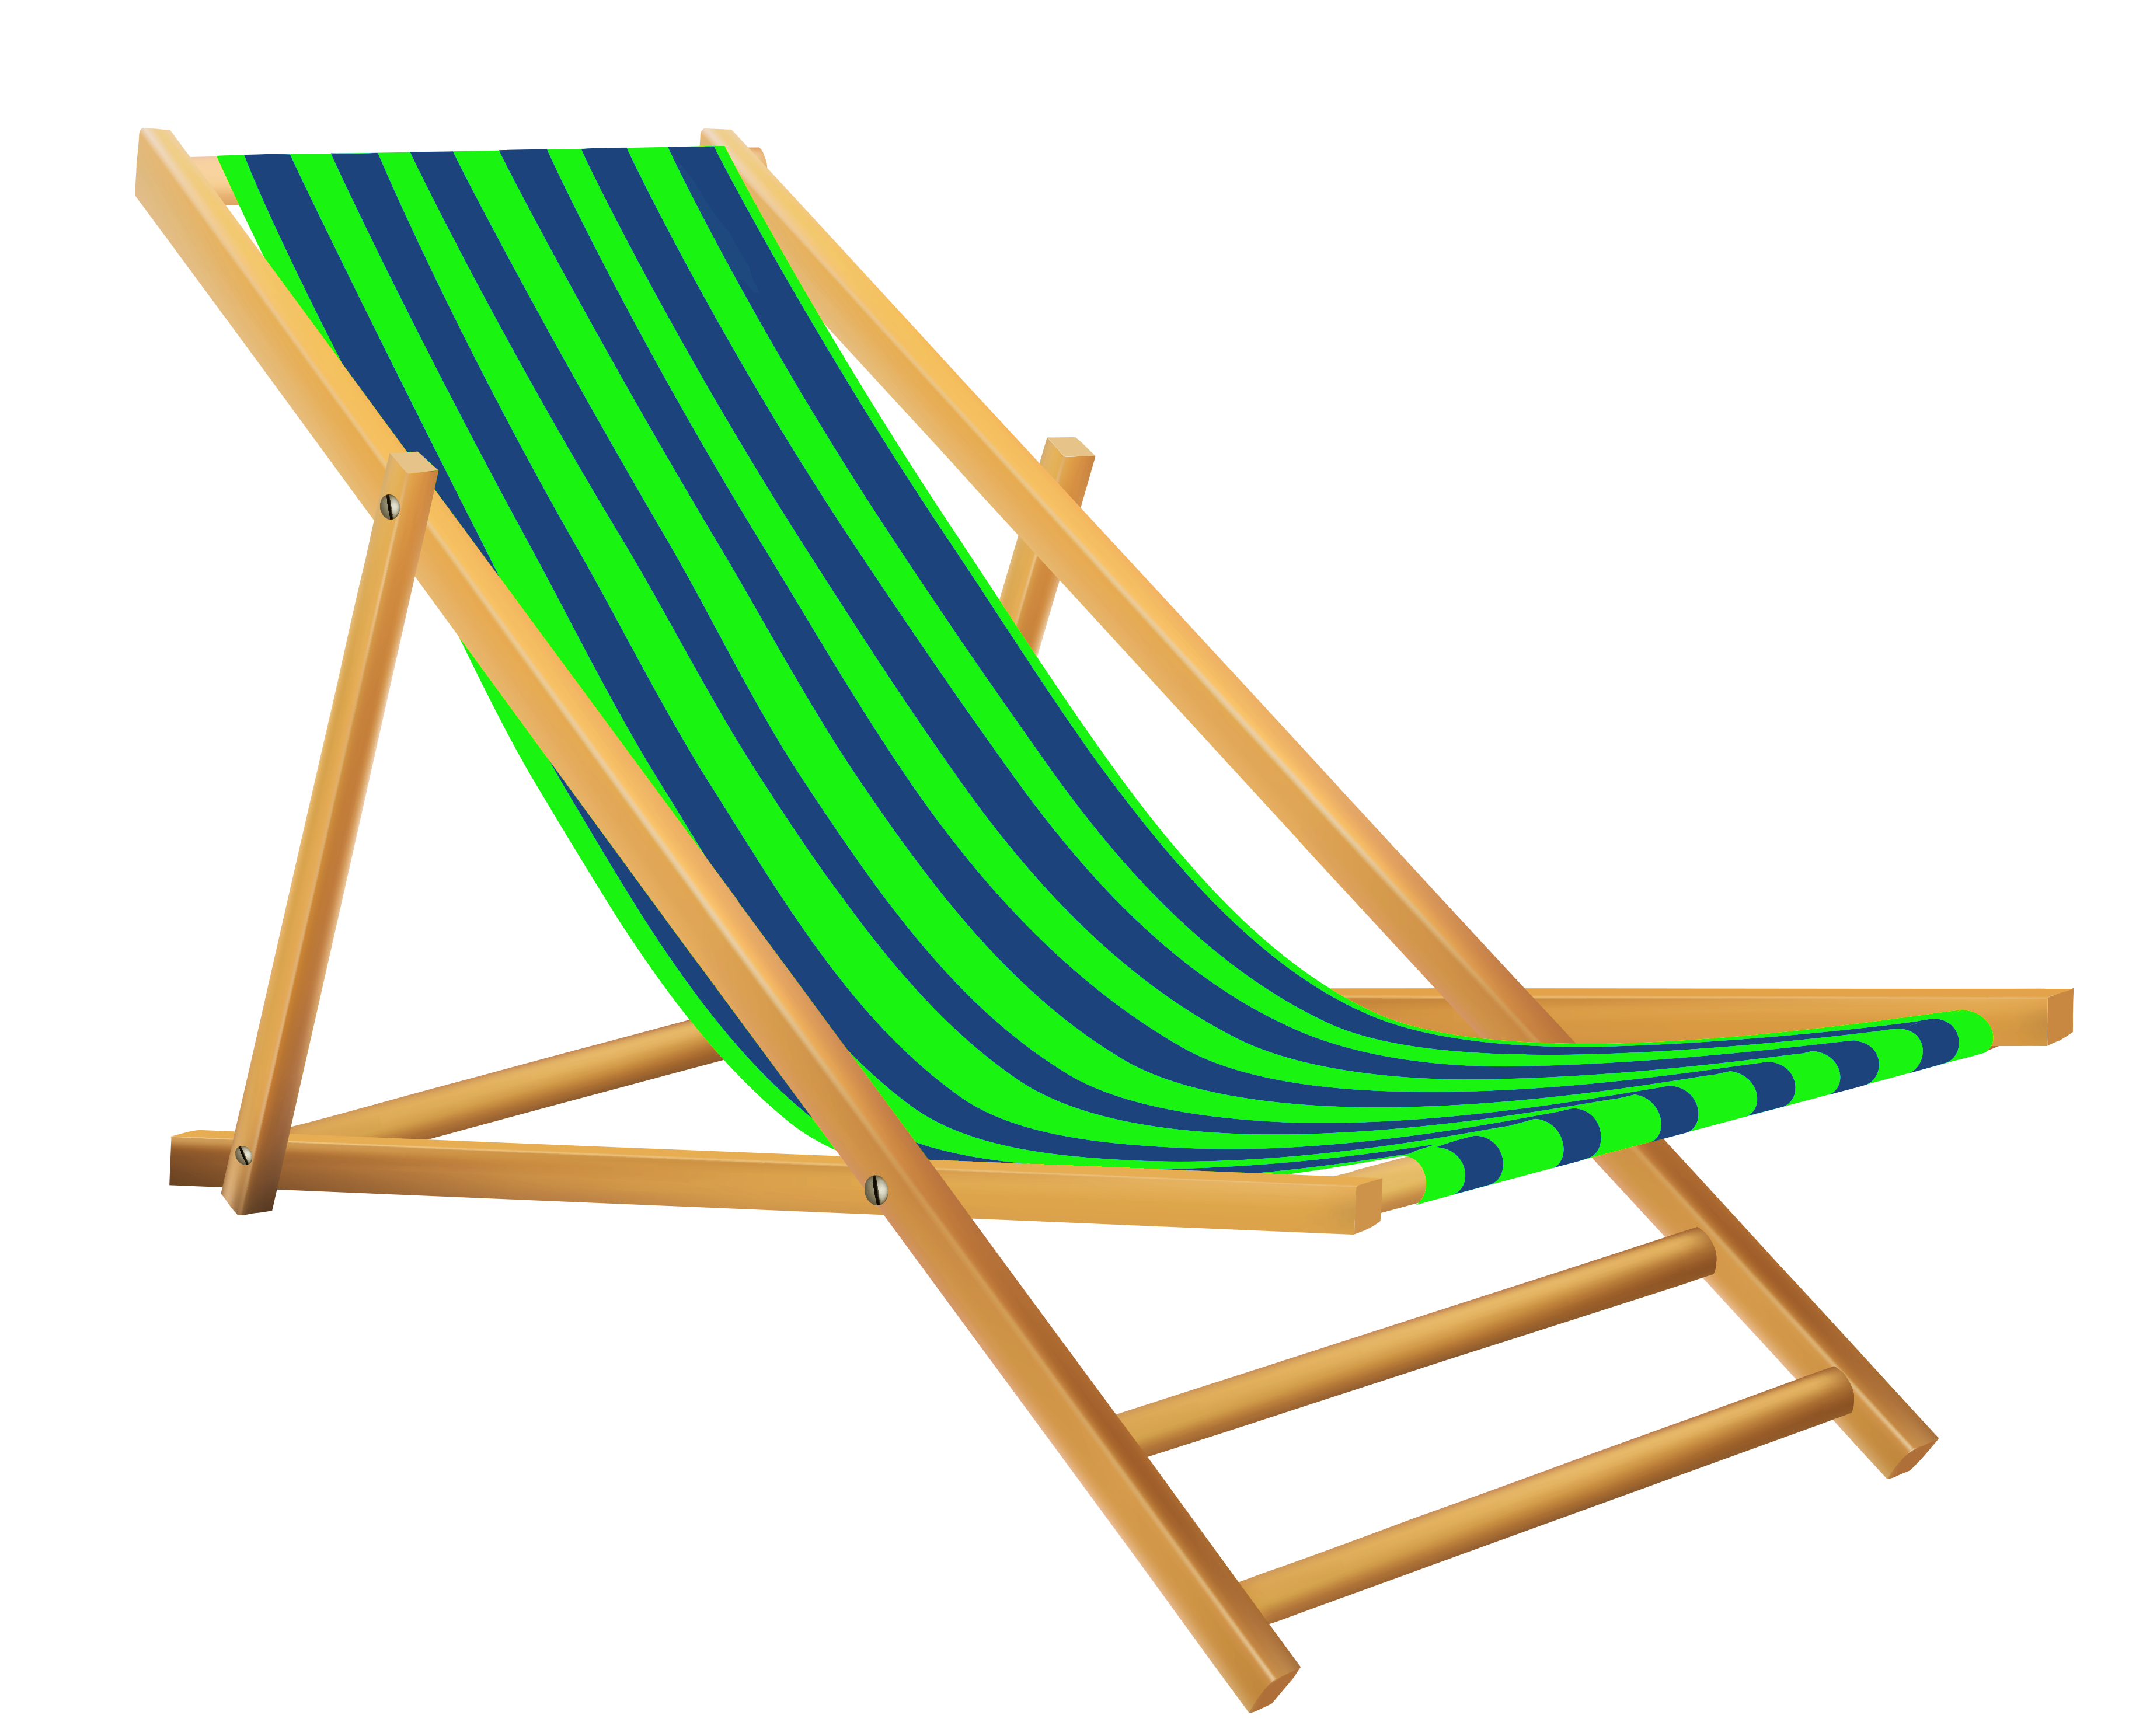 Lounge chairs clipart 20 free Cliparts | Download images ...